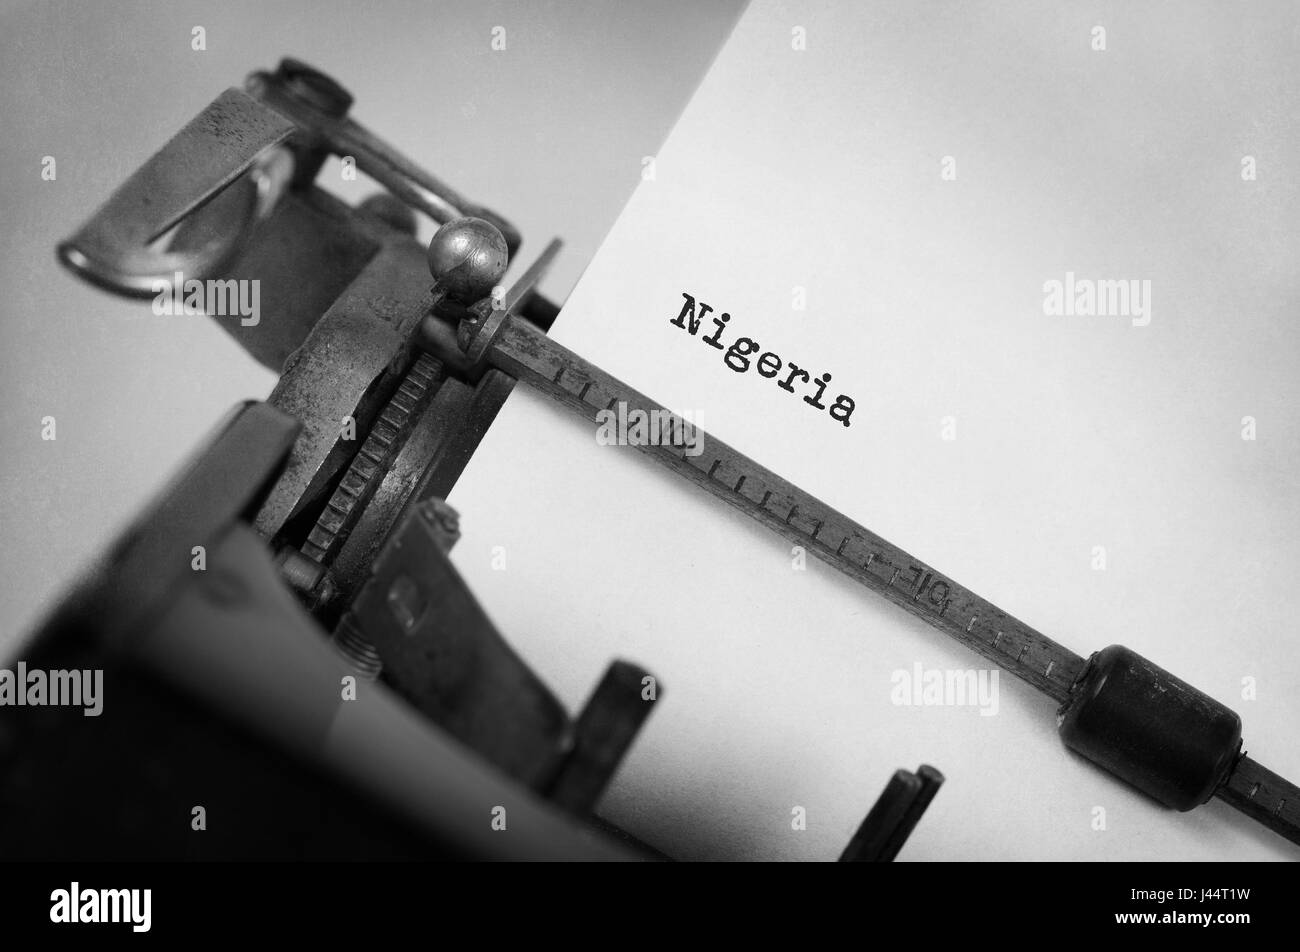 Inscription made by vinrage typewriter, country, Nigeria - Stock Image